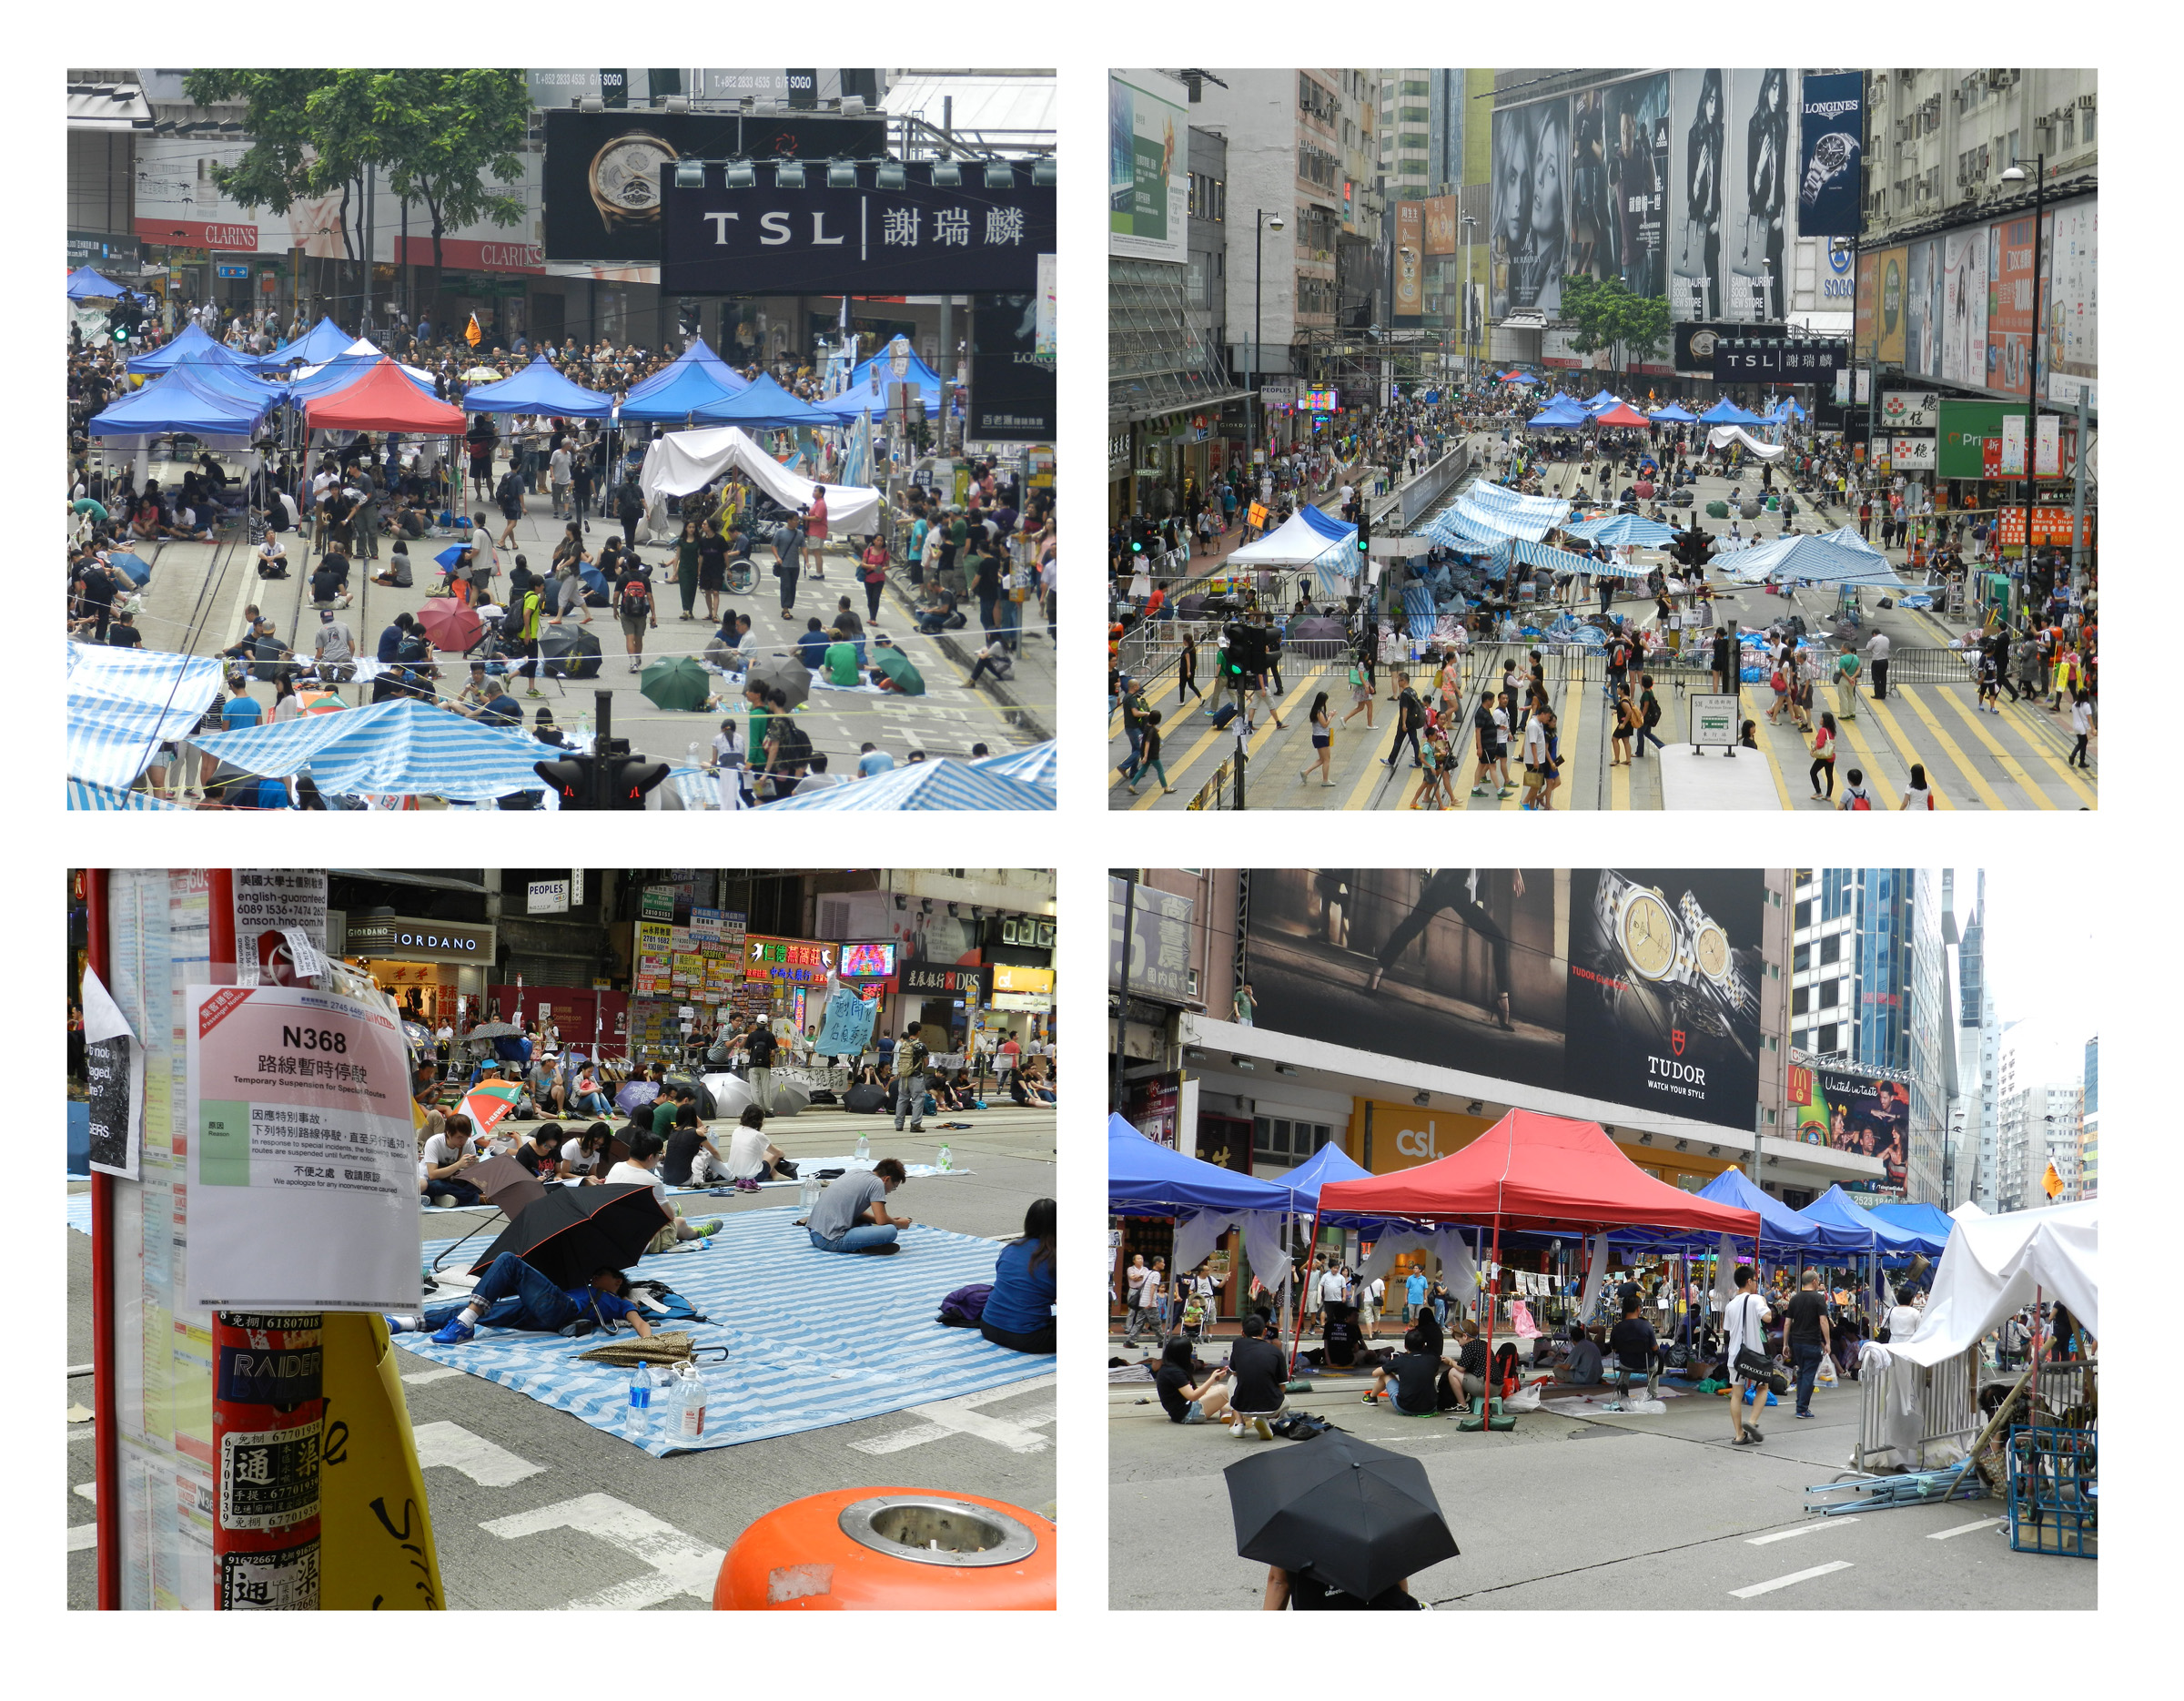 occupy central Important developments in hong kong, where students and citizens are protesting to get more democratic reforms according to various internet reports (various posts at the bbc-website, hufftington, bloomberg), college and university students went on strike last monday to protest beijing's decision.